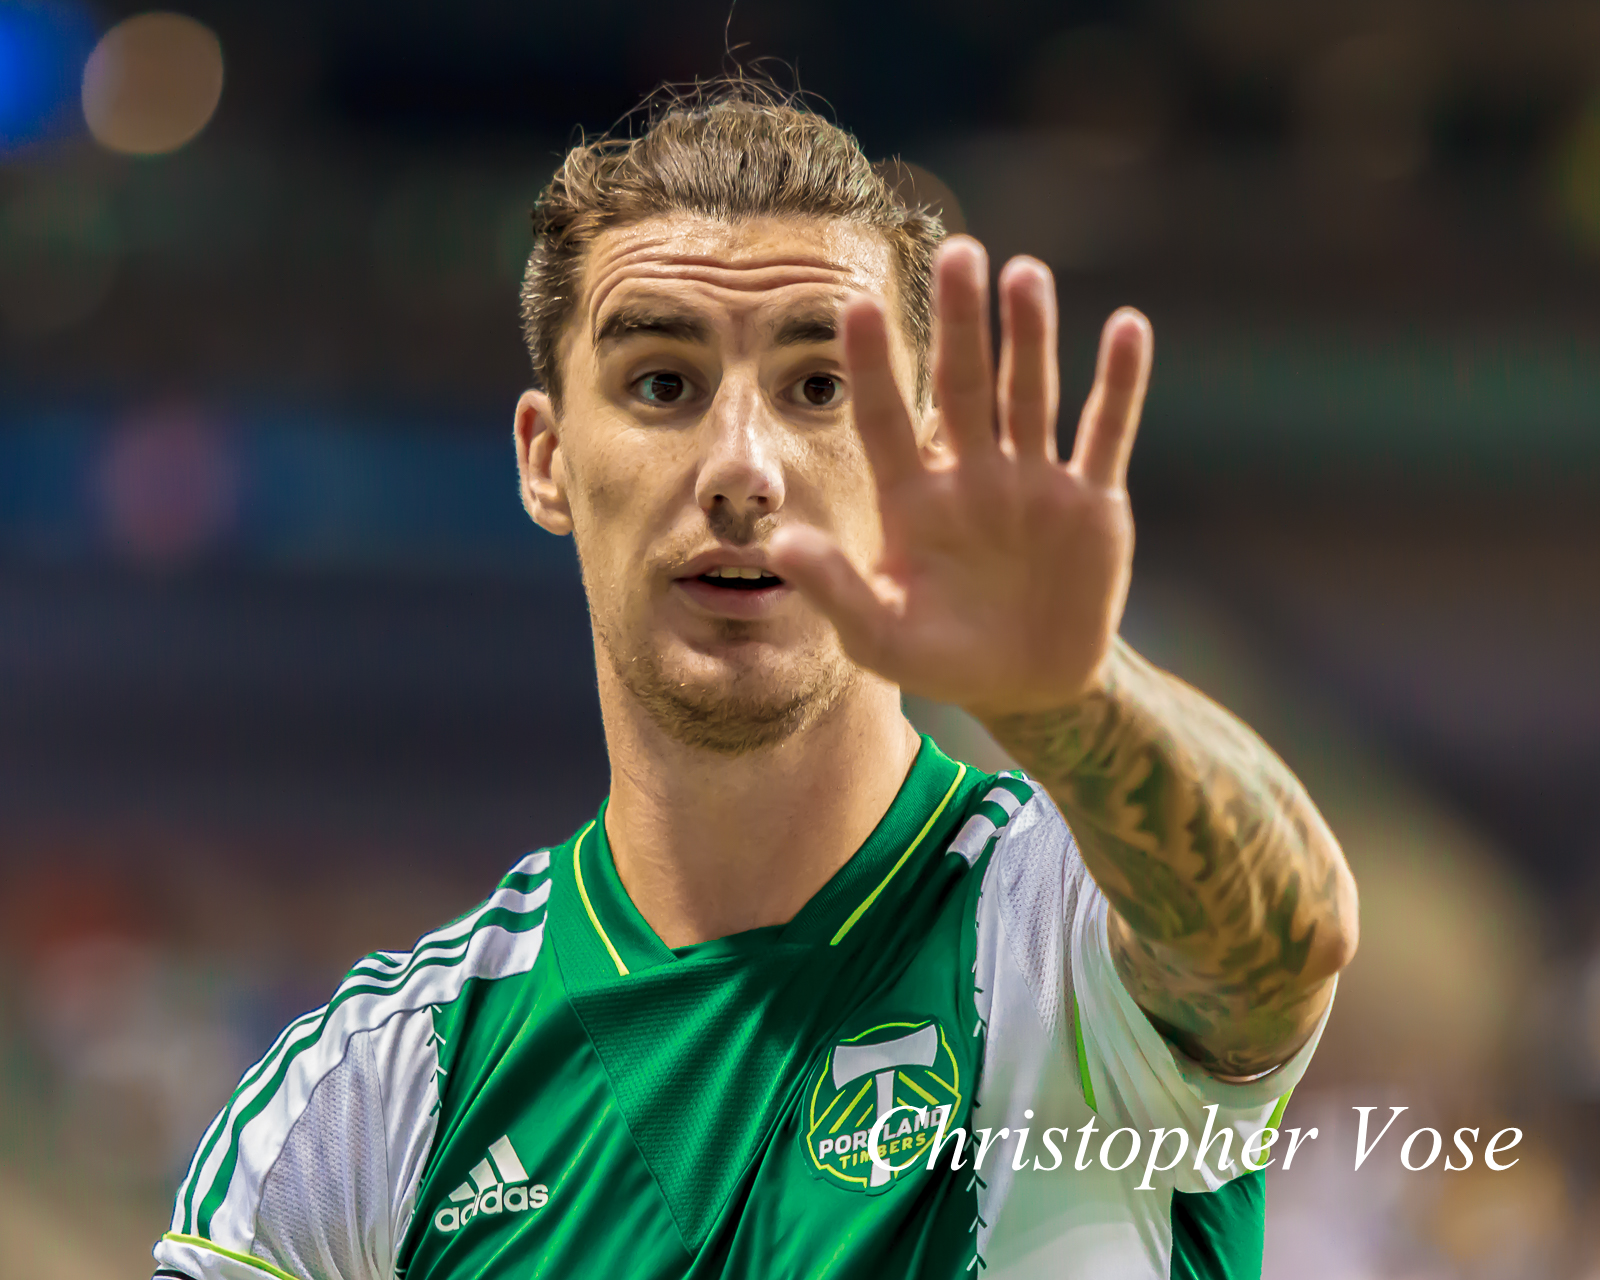 For a professional athlete, Liam Ridgewell is surprisingly camera shy.